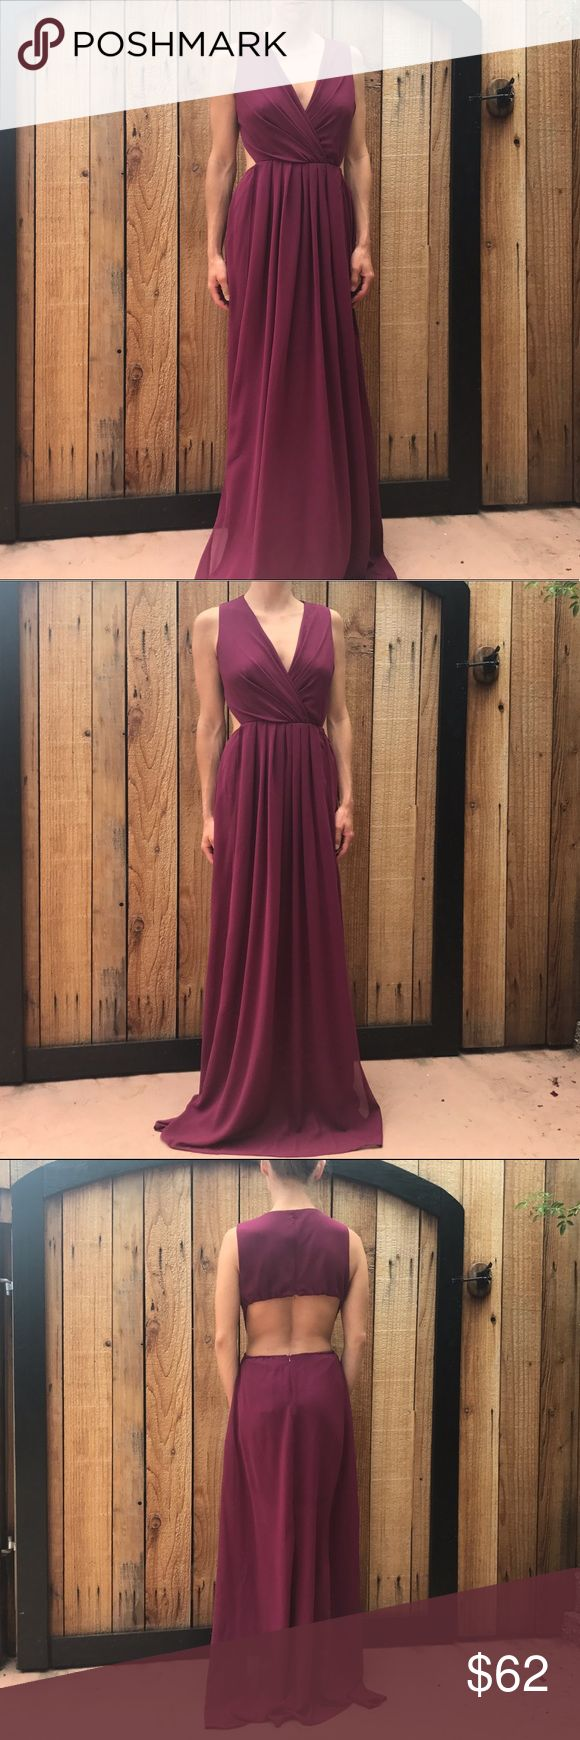 Hot Miami Styles Full Length Dress🎉30% OFF BUNDLE Hot Miami Style Dress, new with tags. Zips up the back/ open back. Bundle and save. No trades  Burgundy ish color  #hotmiamistyle #formal #dress Hot Miami Styles Dresses Wedding